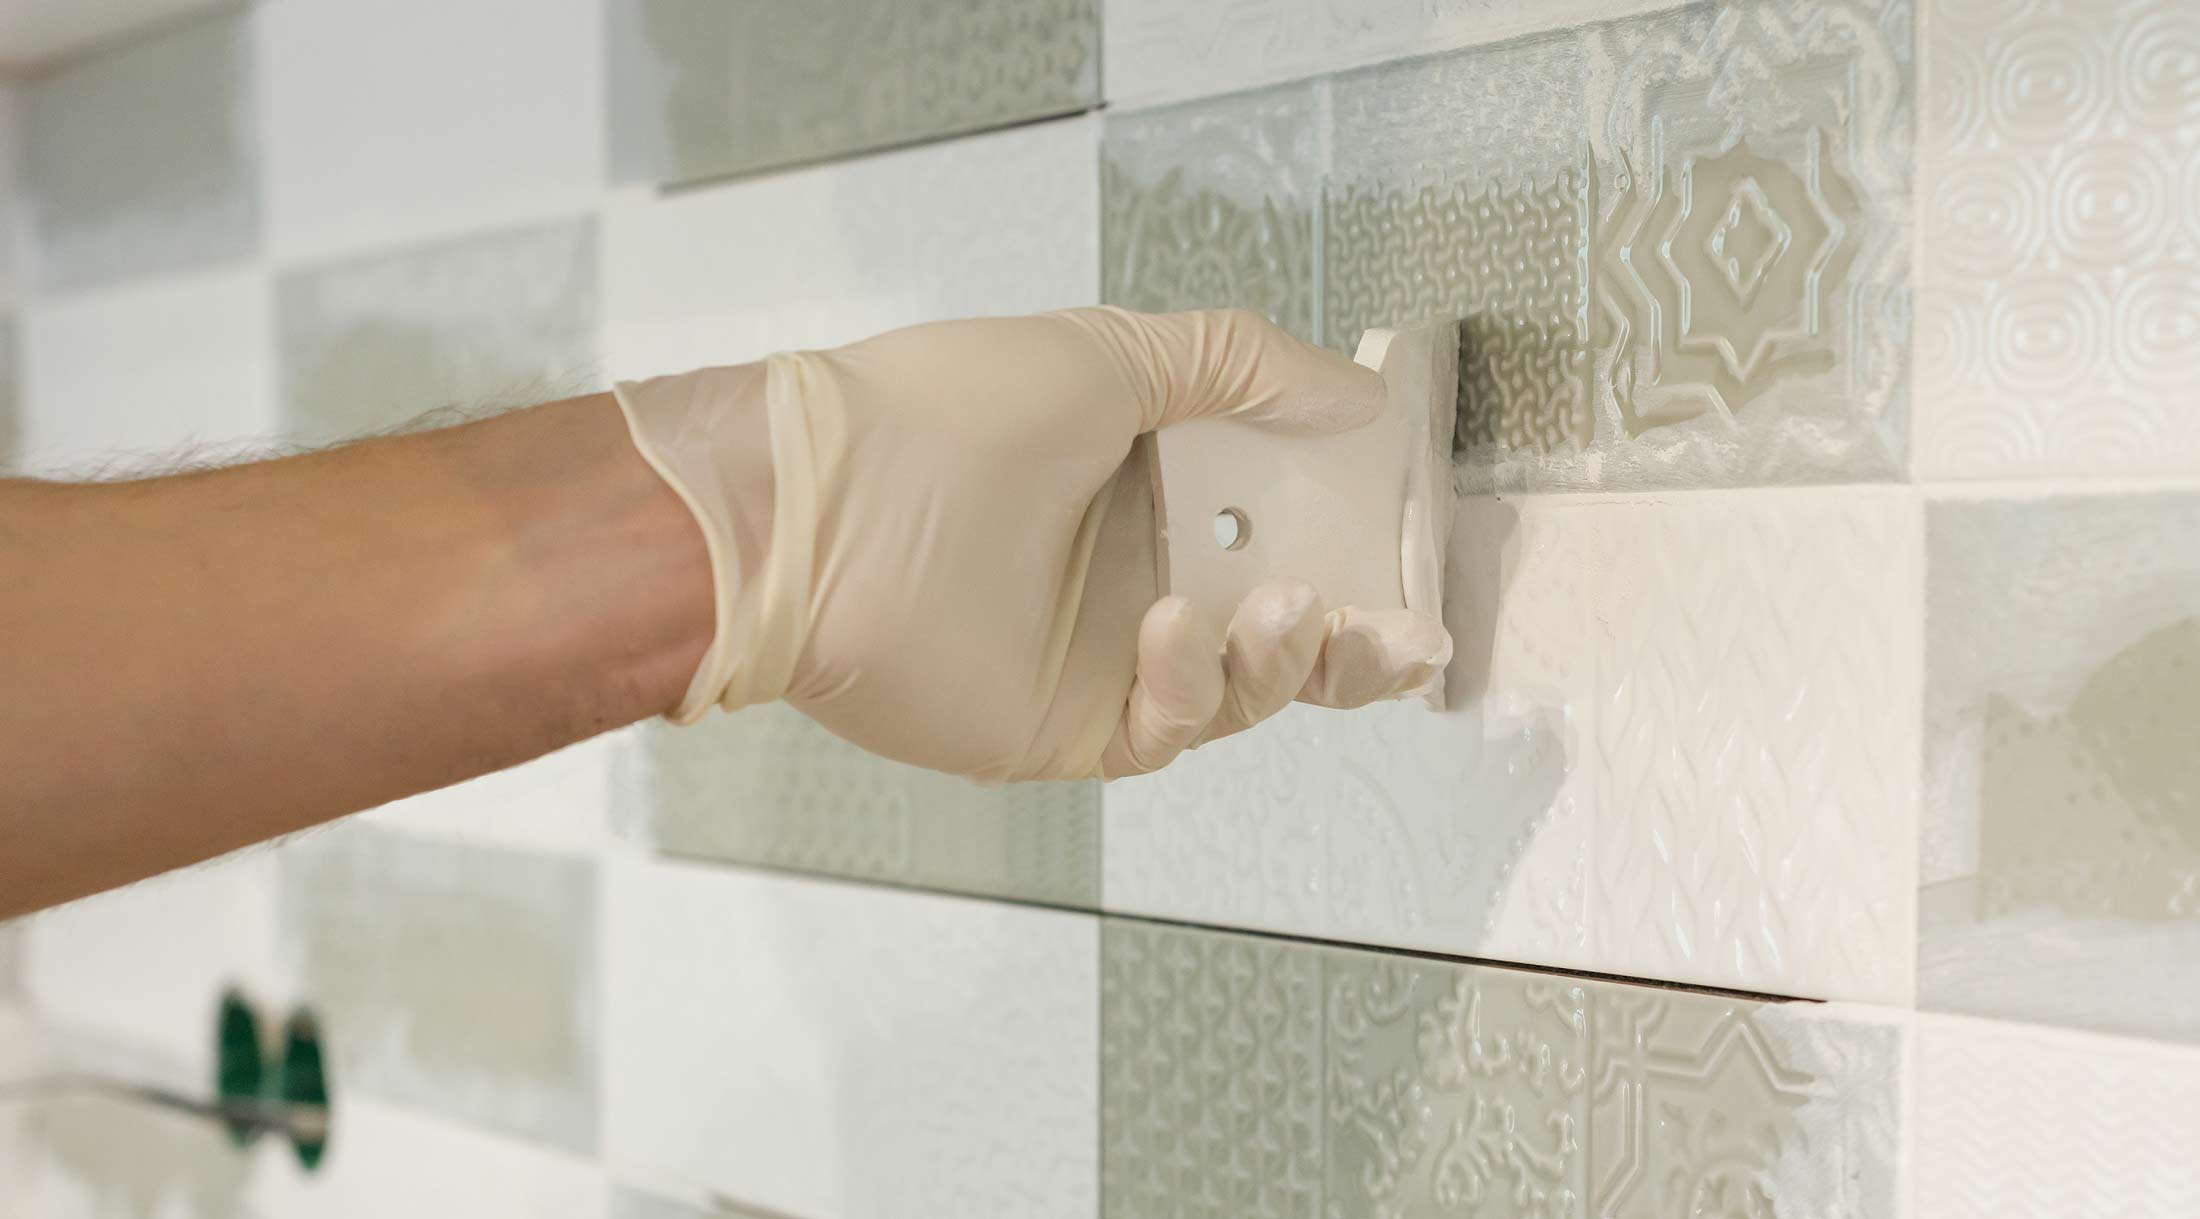 How to choose the right grout for your tile project 93